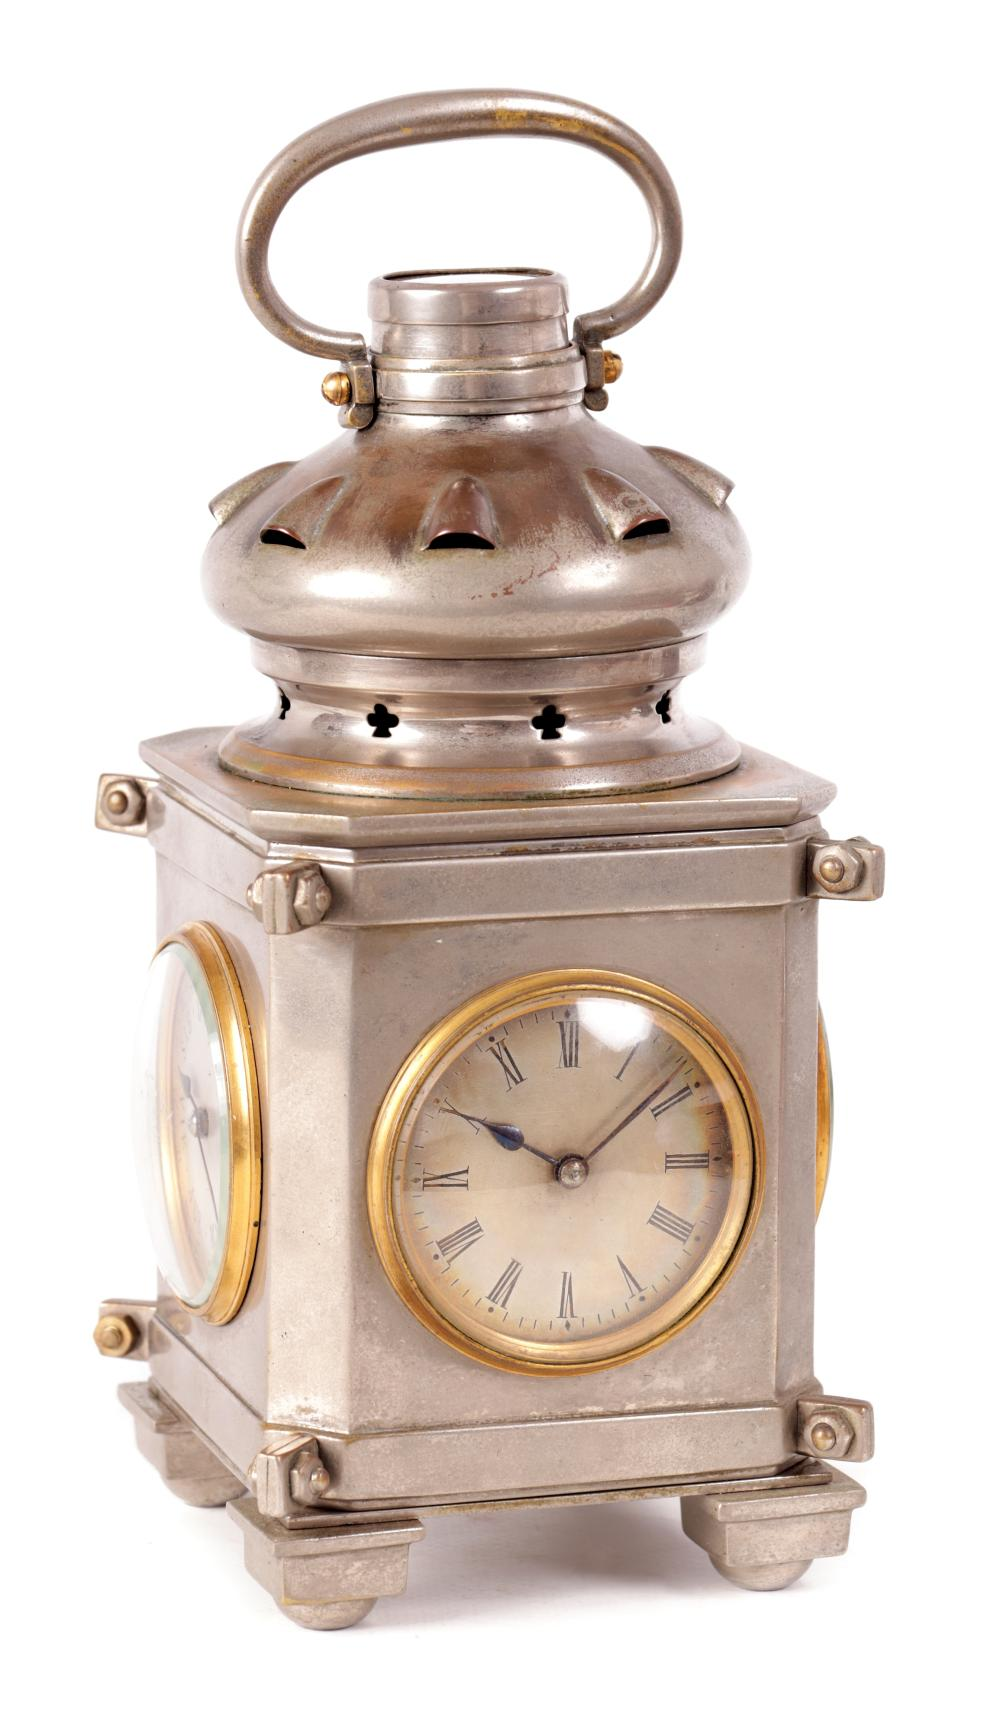 A RARE AND UNUSUAL FRENCH INDUSTRIAL CLOCK COMPENDIUM